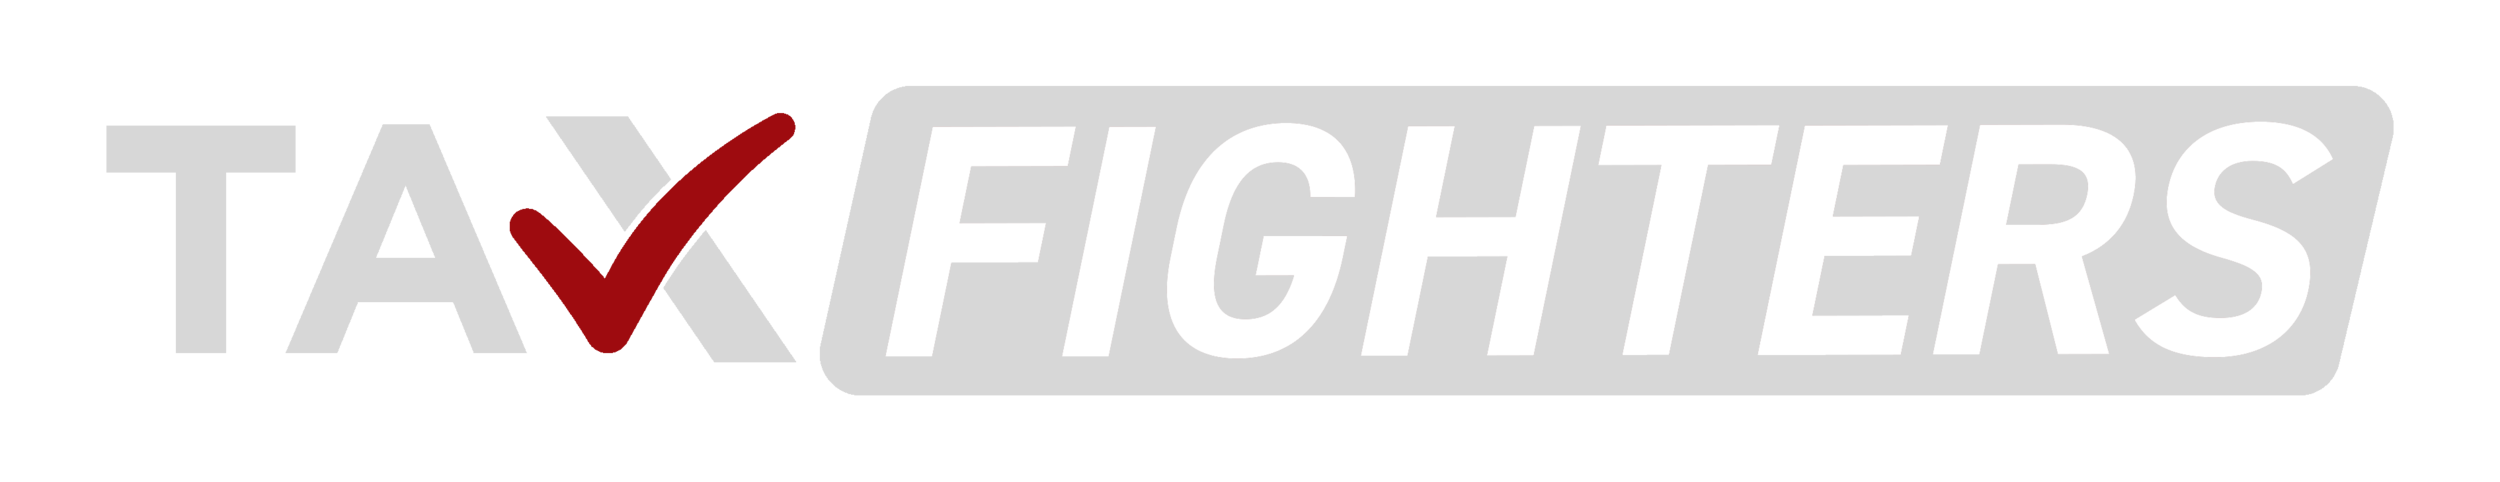 Tax Fighters logo updated.png